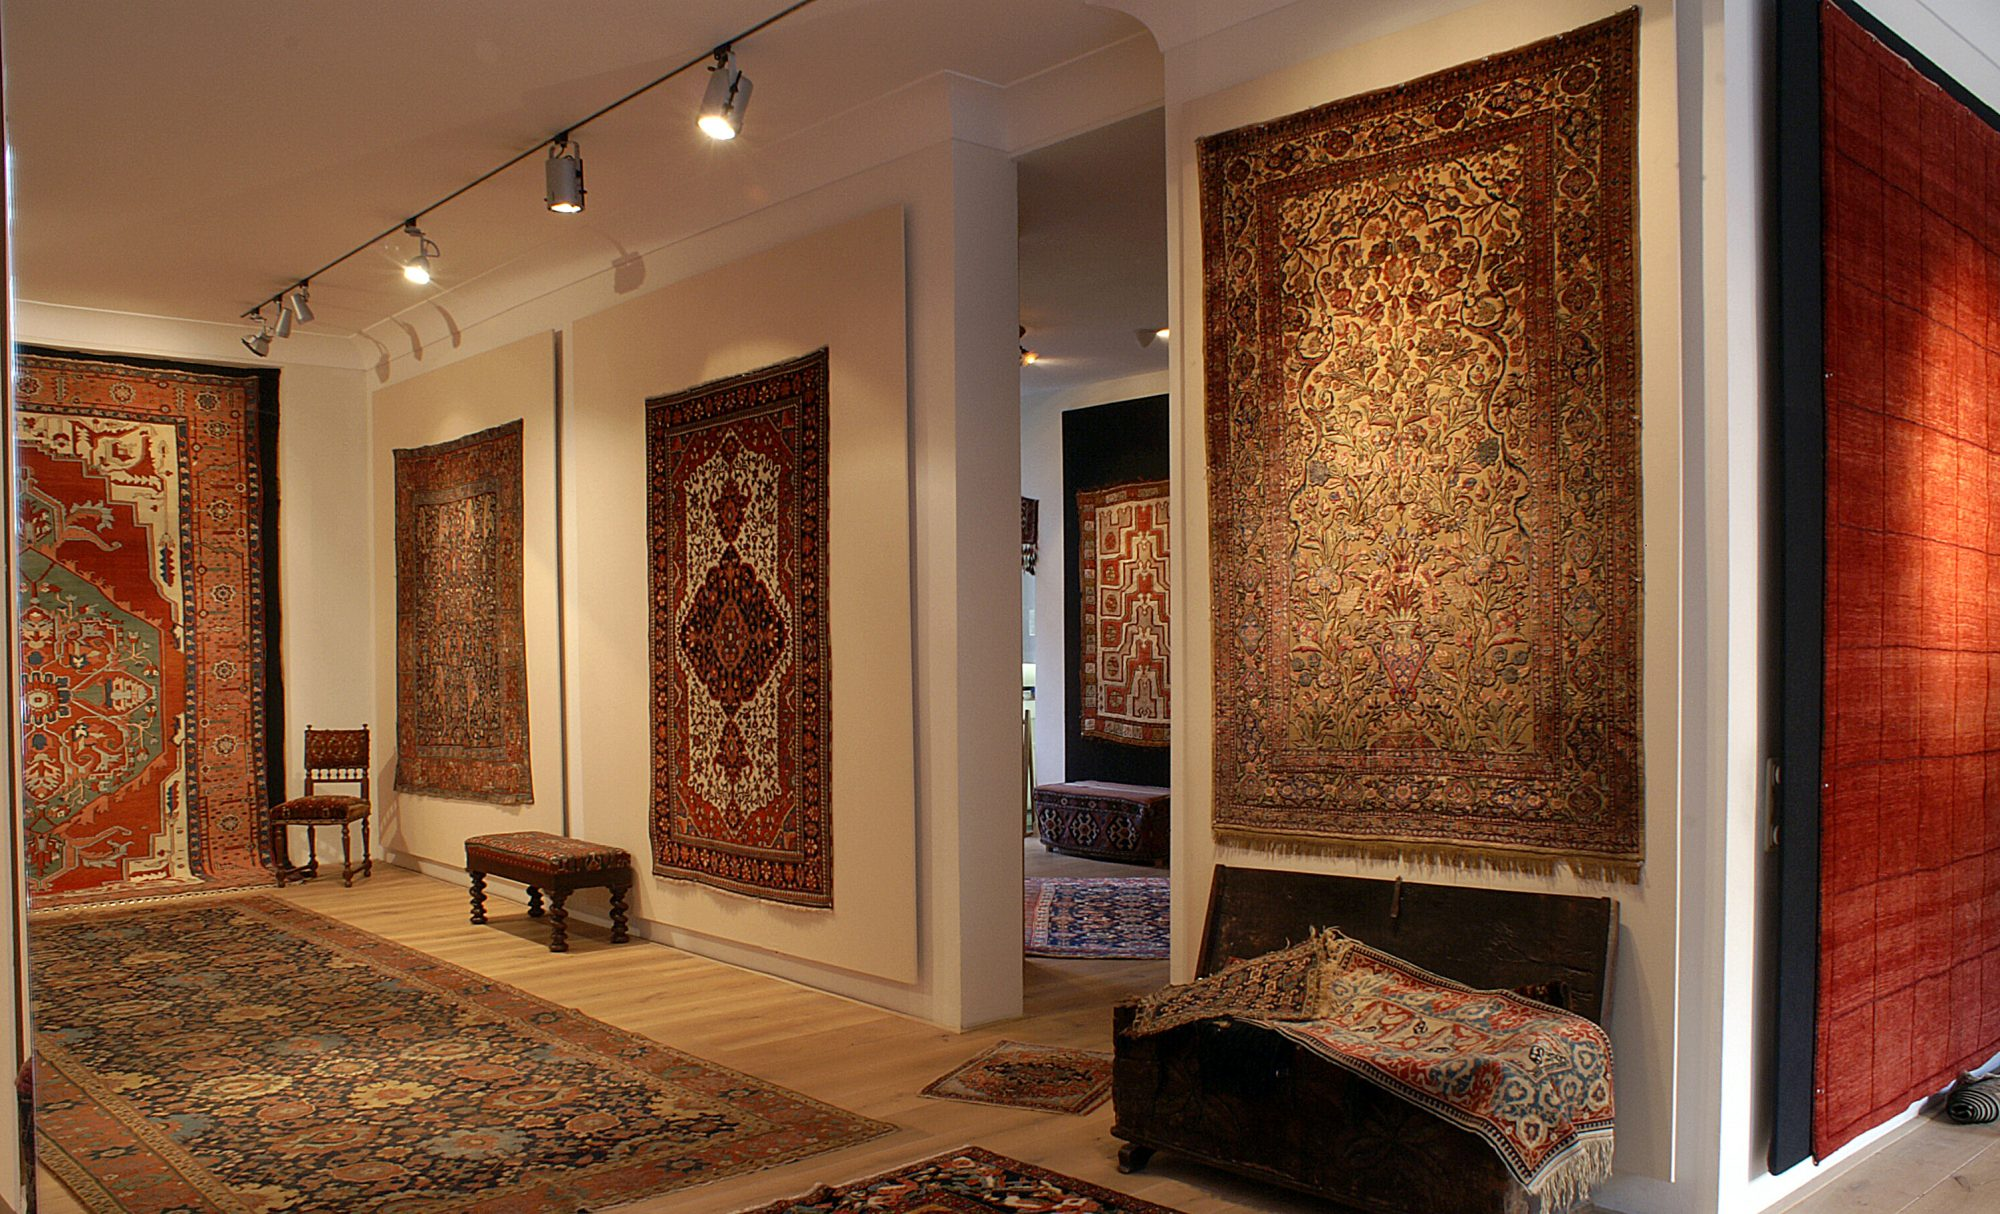 Foumani Persian Gallery